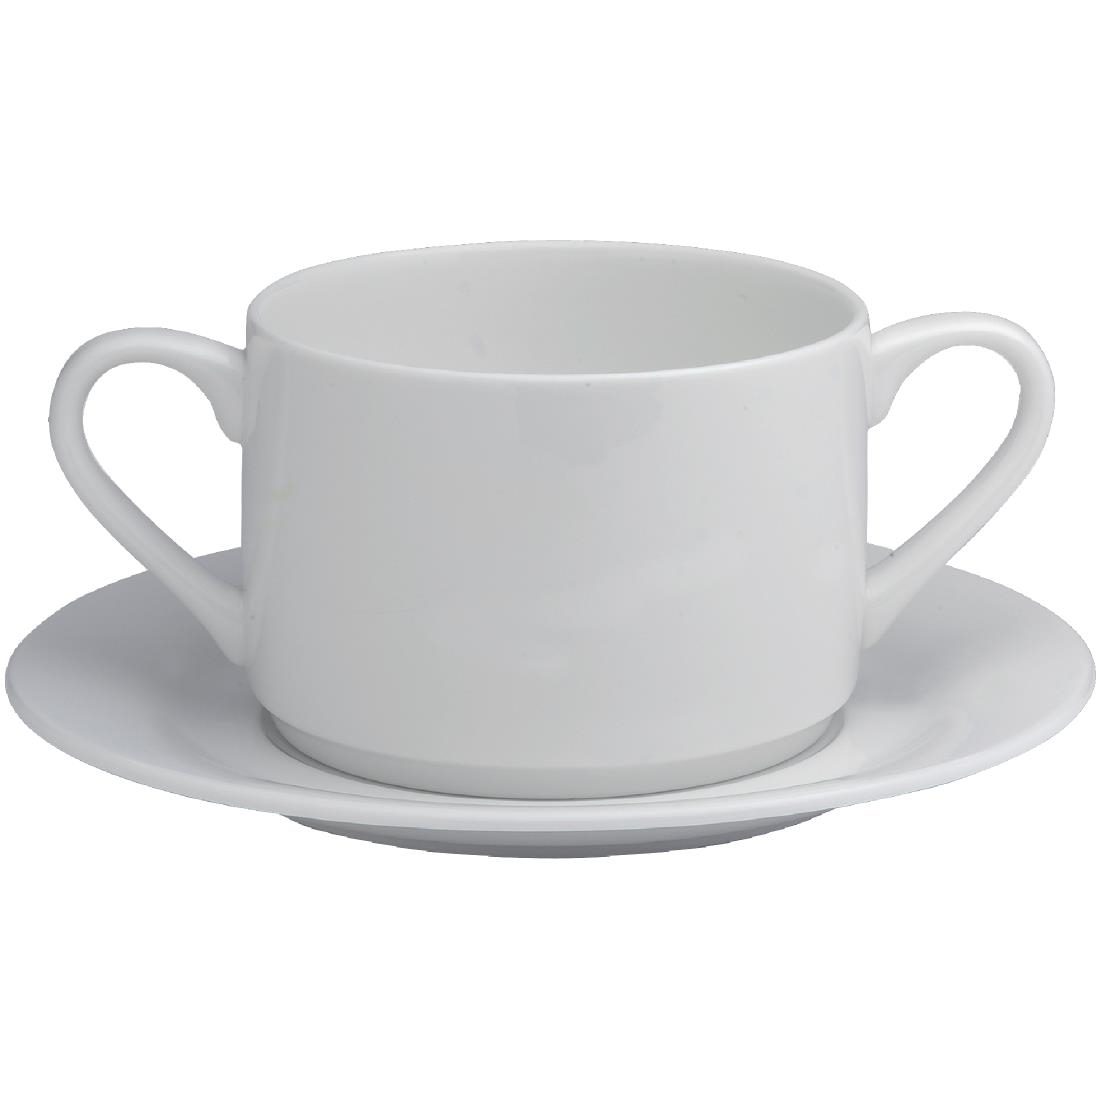 Image of Elia Glacier Fine China Handled Soup Cups 220ml (Pack of 6) Pack of 6